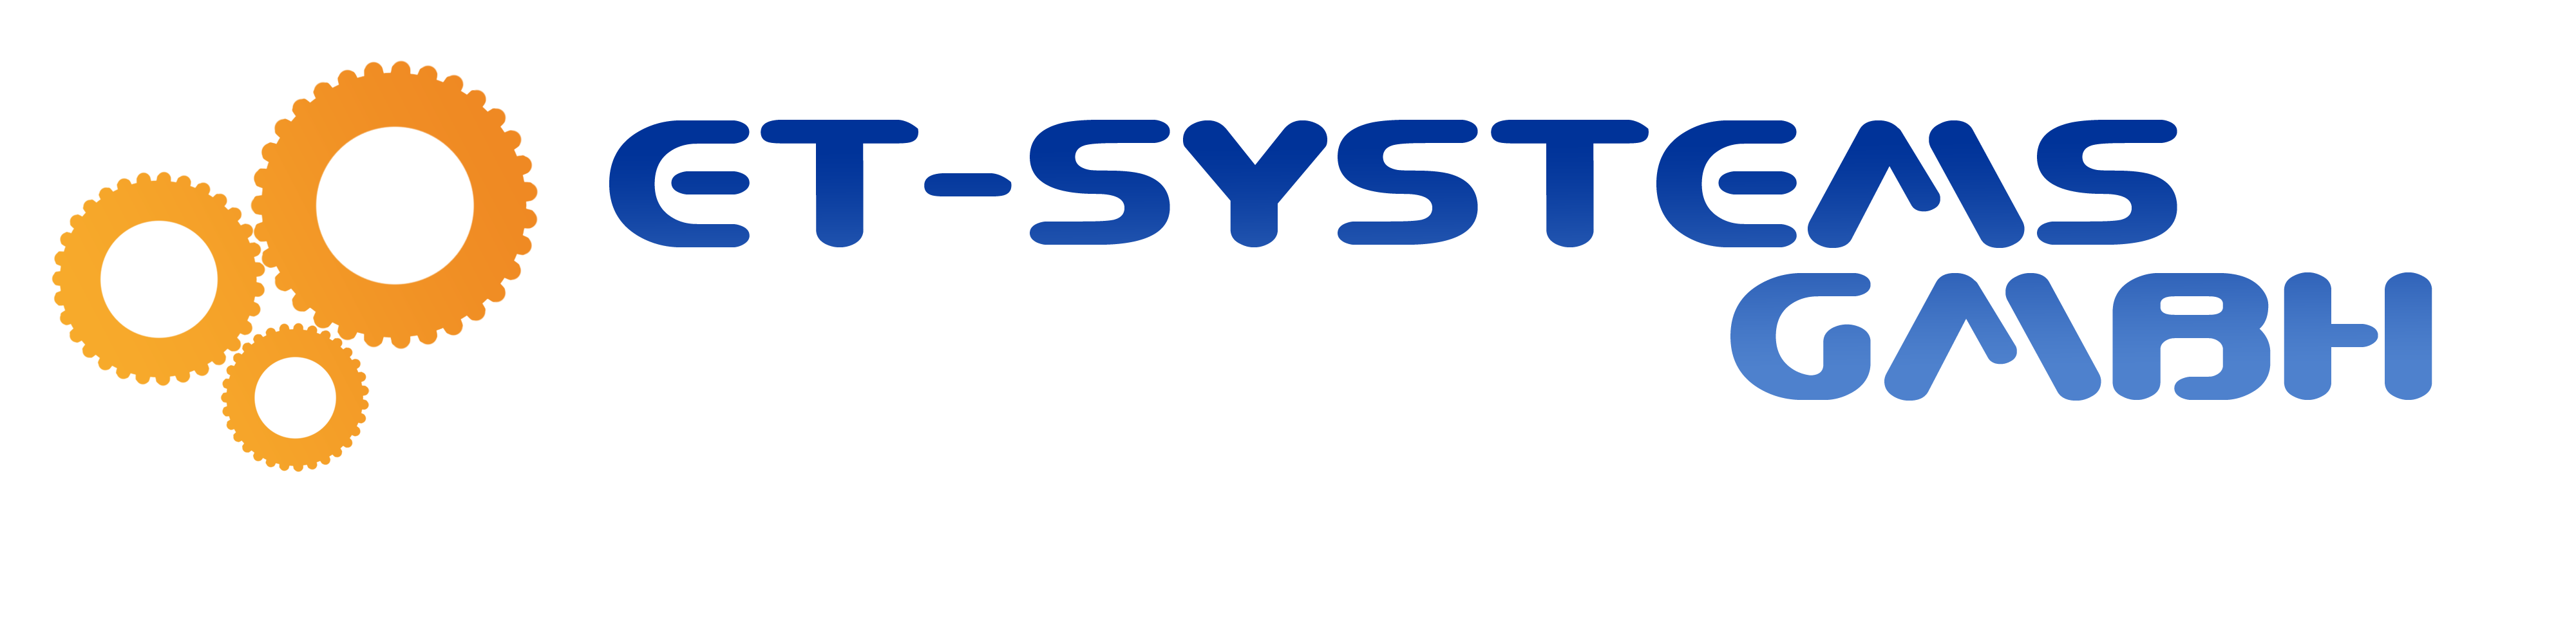 et-systems Ticket-System